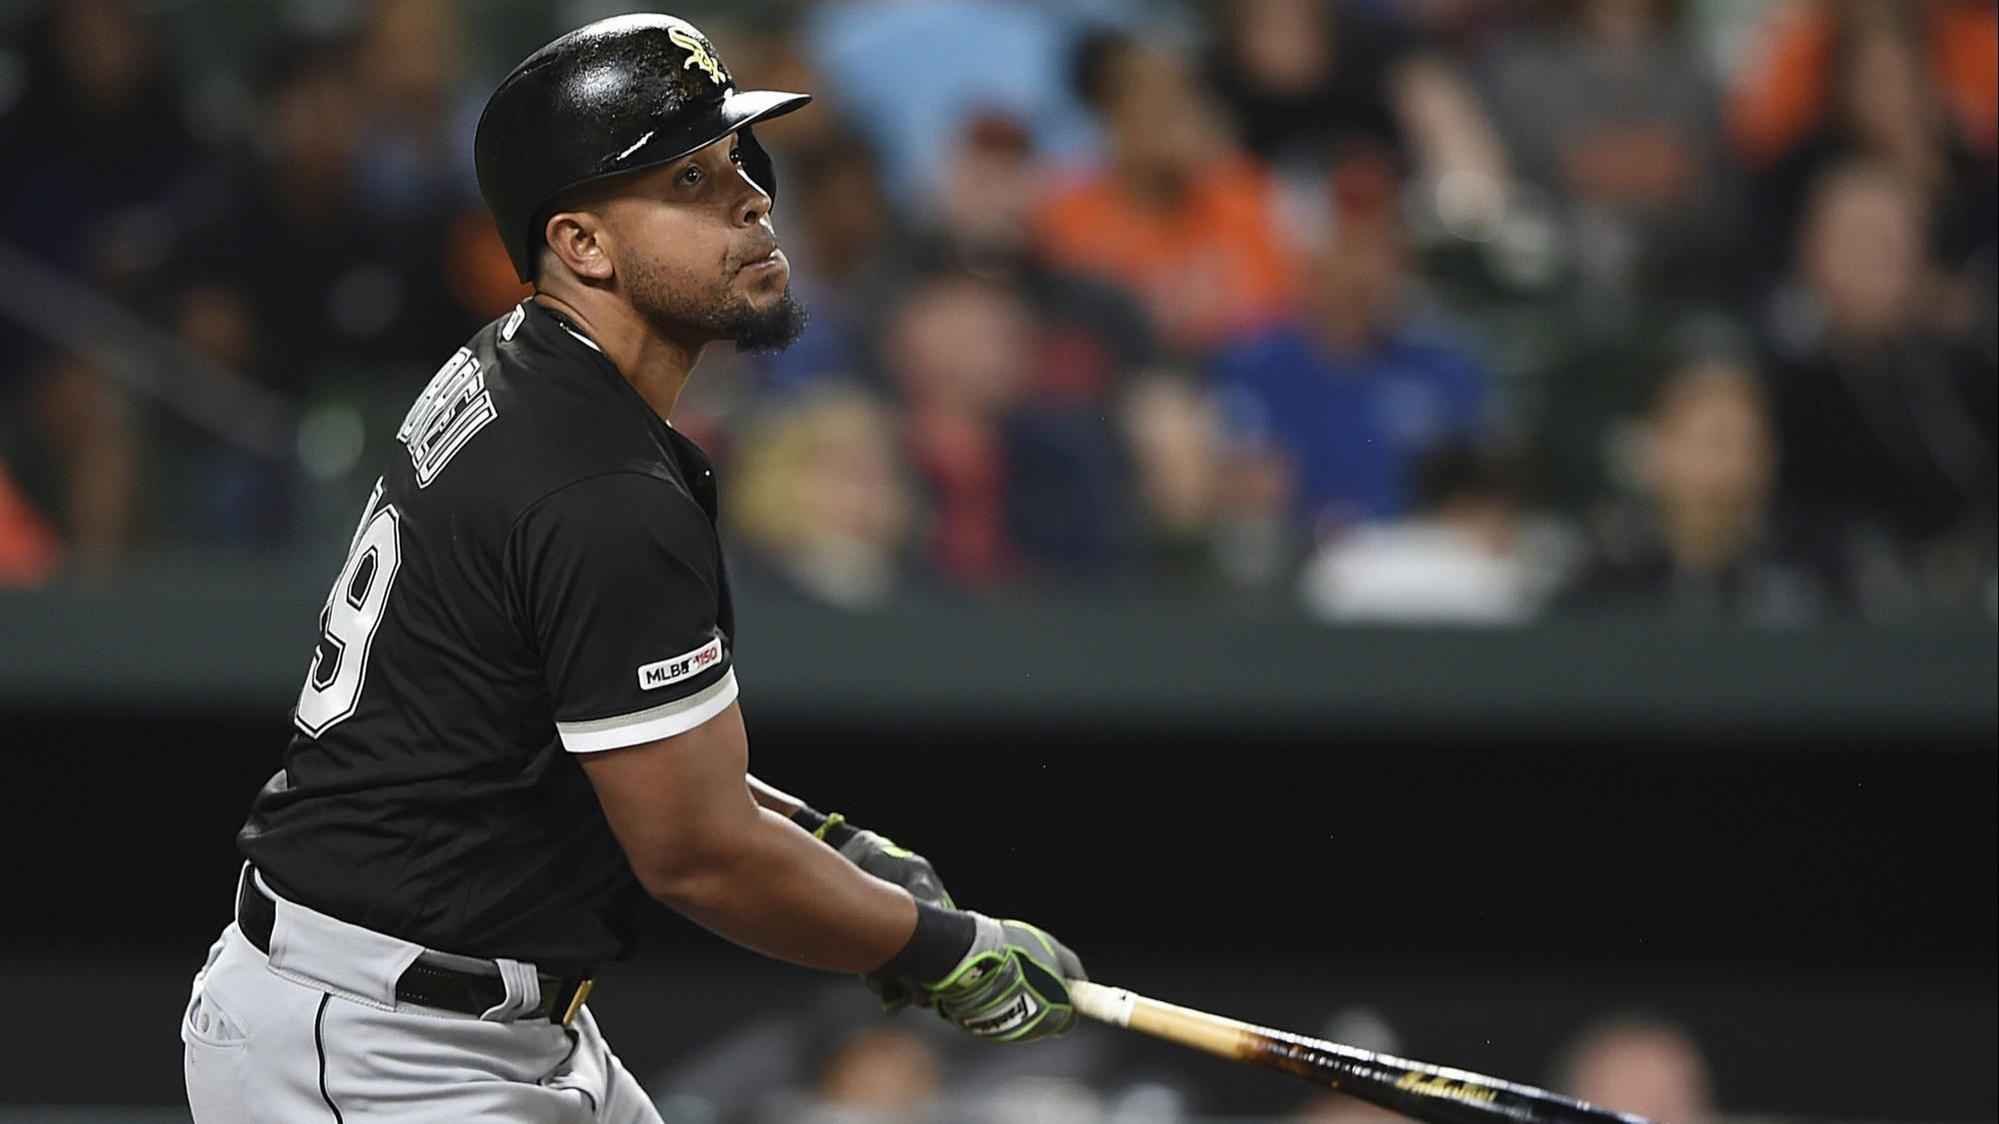 Jose Abreu homers and drives in 5 to help the White Sox crush the Orioles 12-2